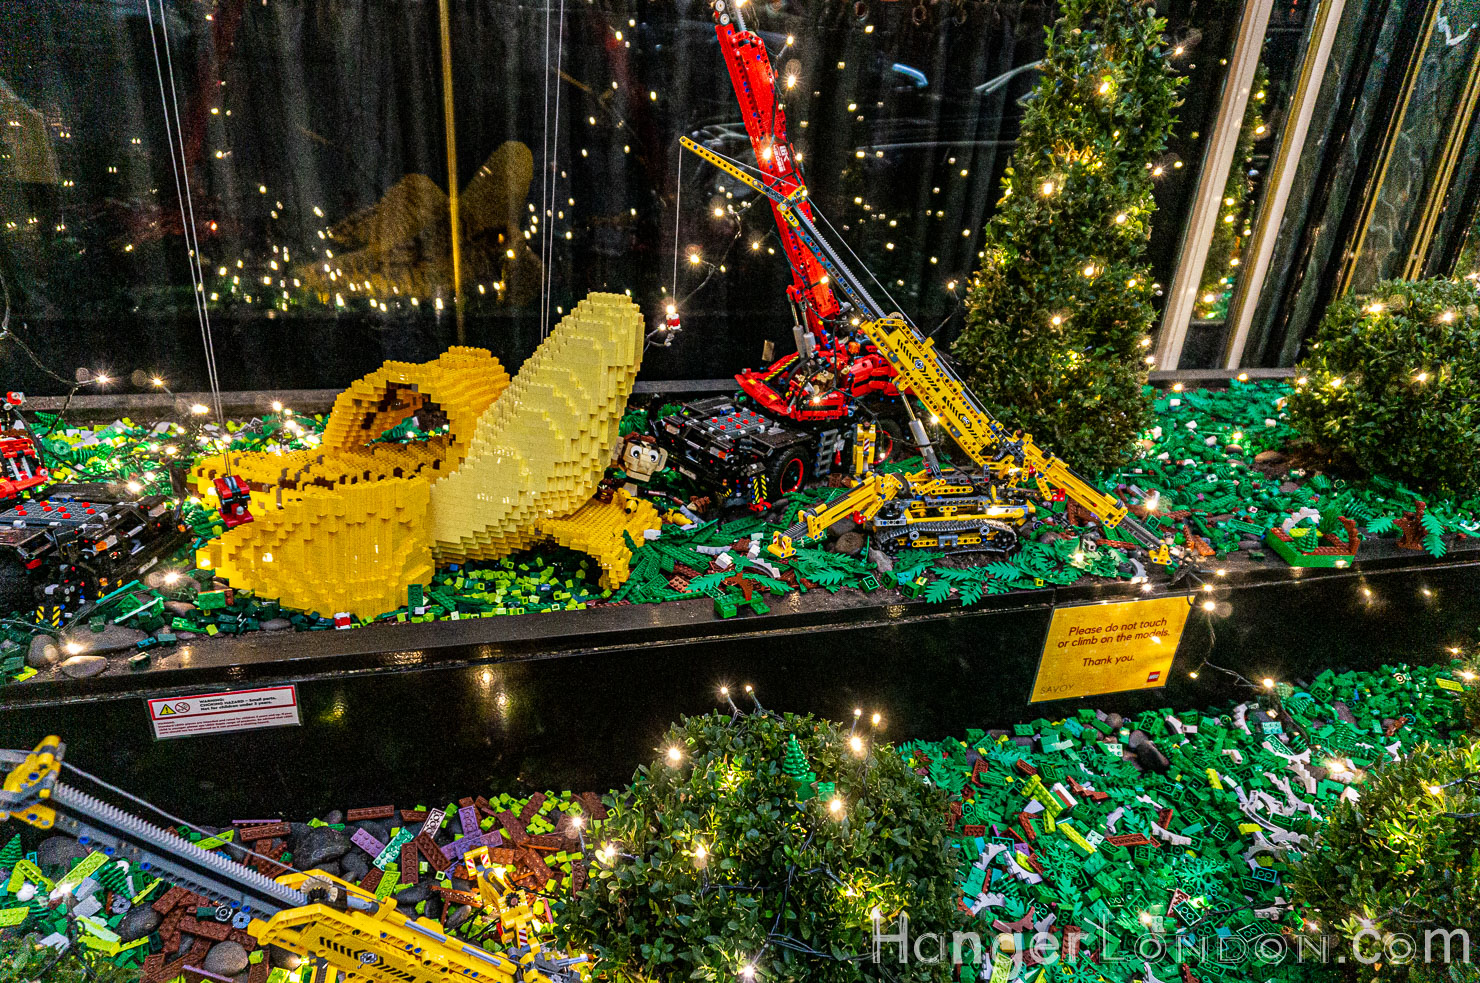 The Savoy lego banana